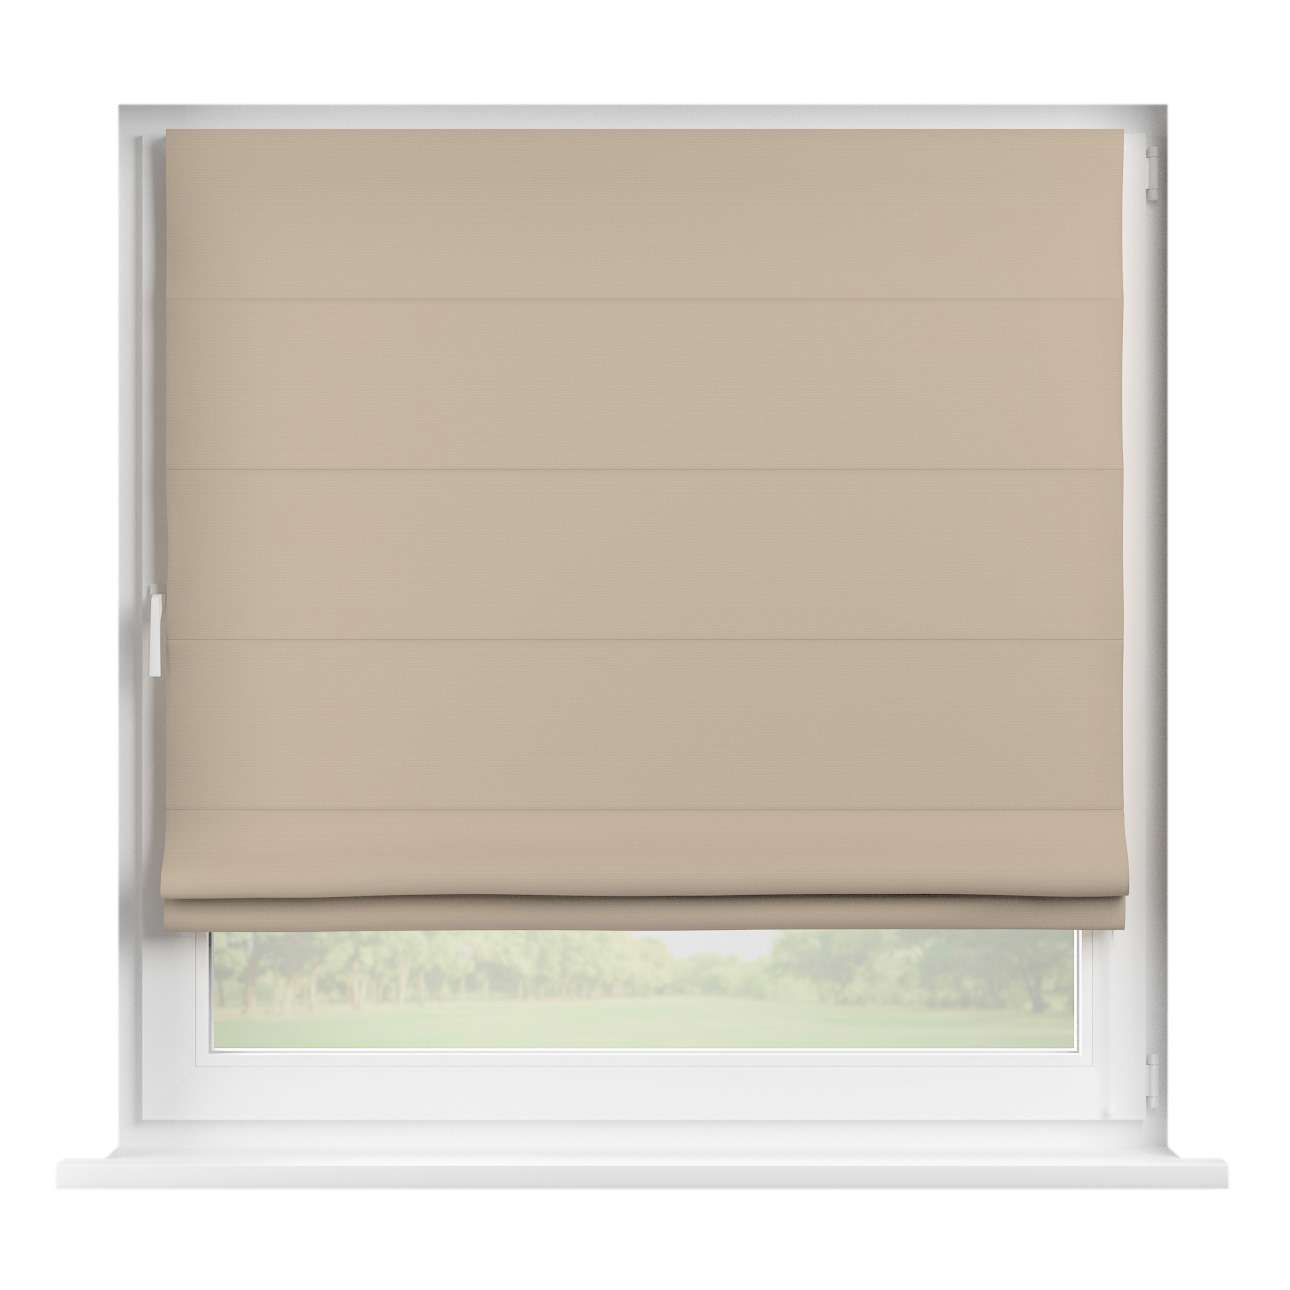 Capri roman blind in collection Panama Cotton, fabric: 702-28